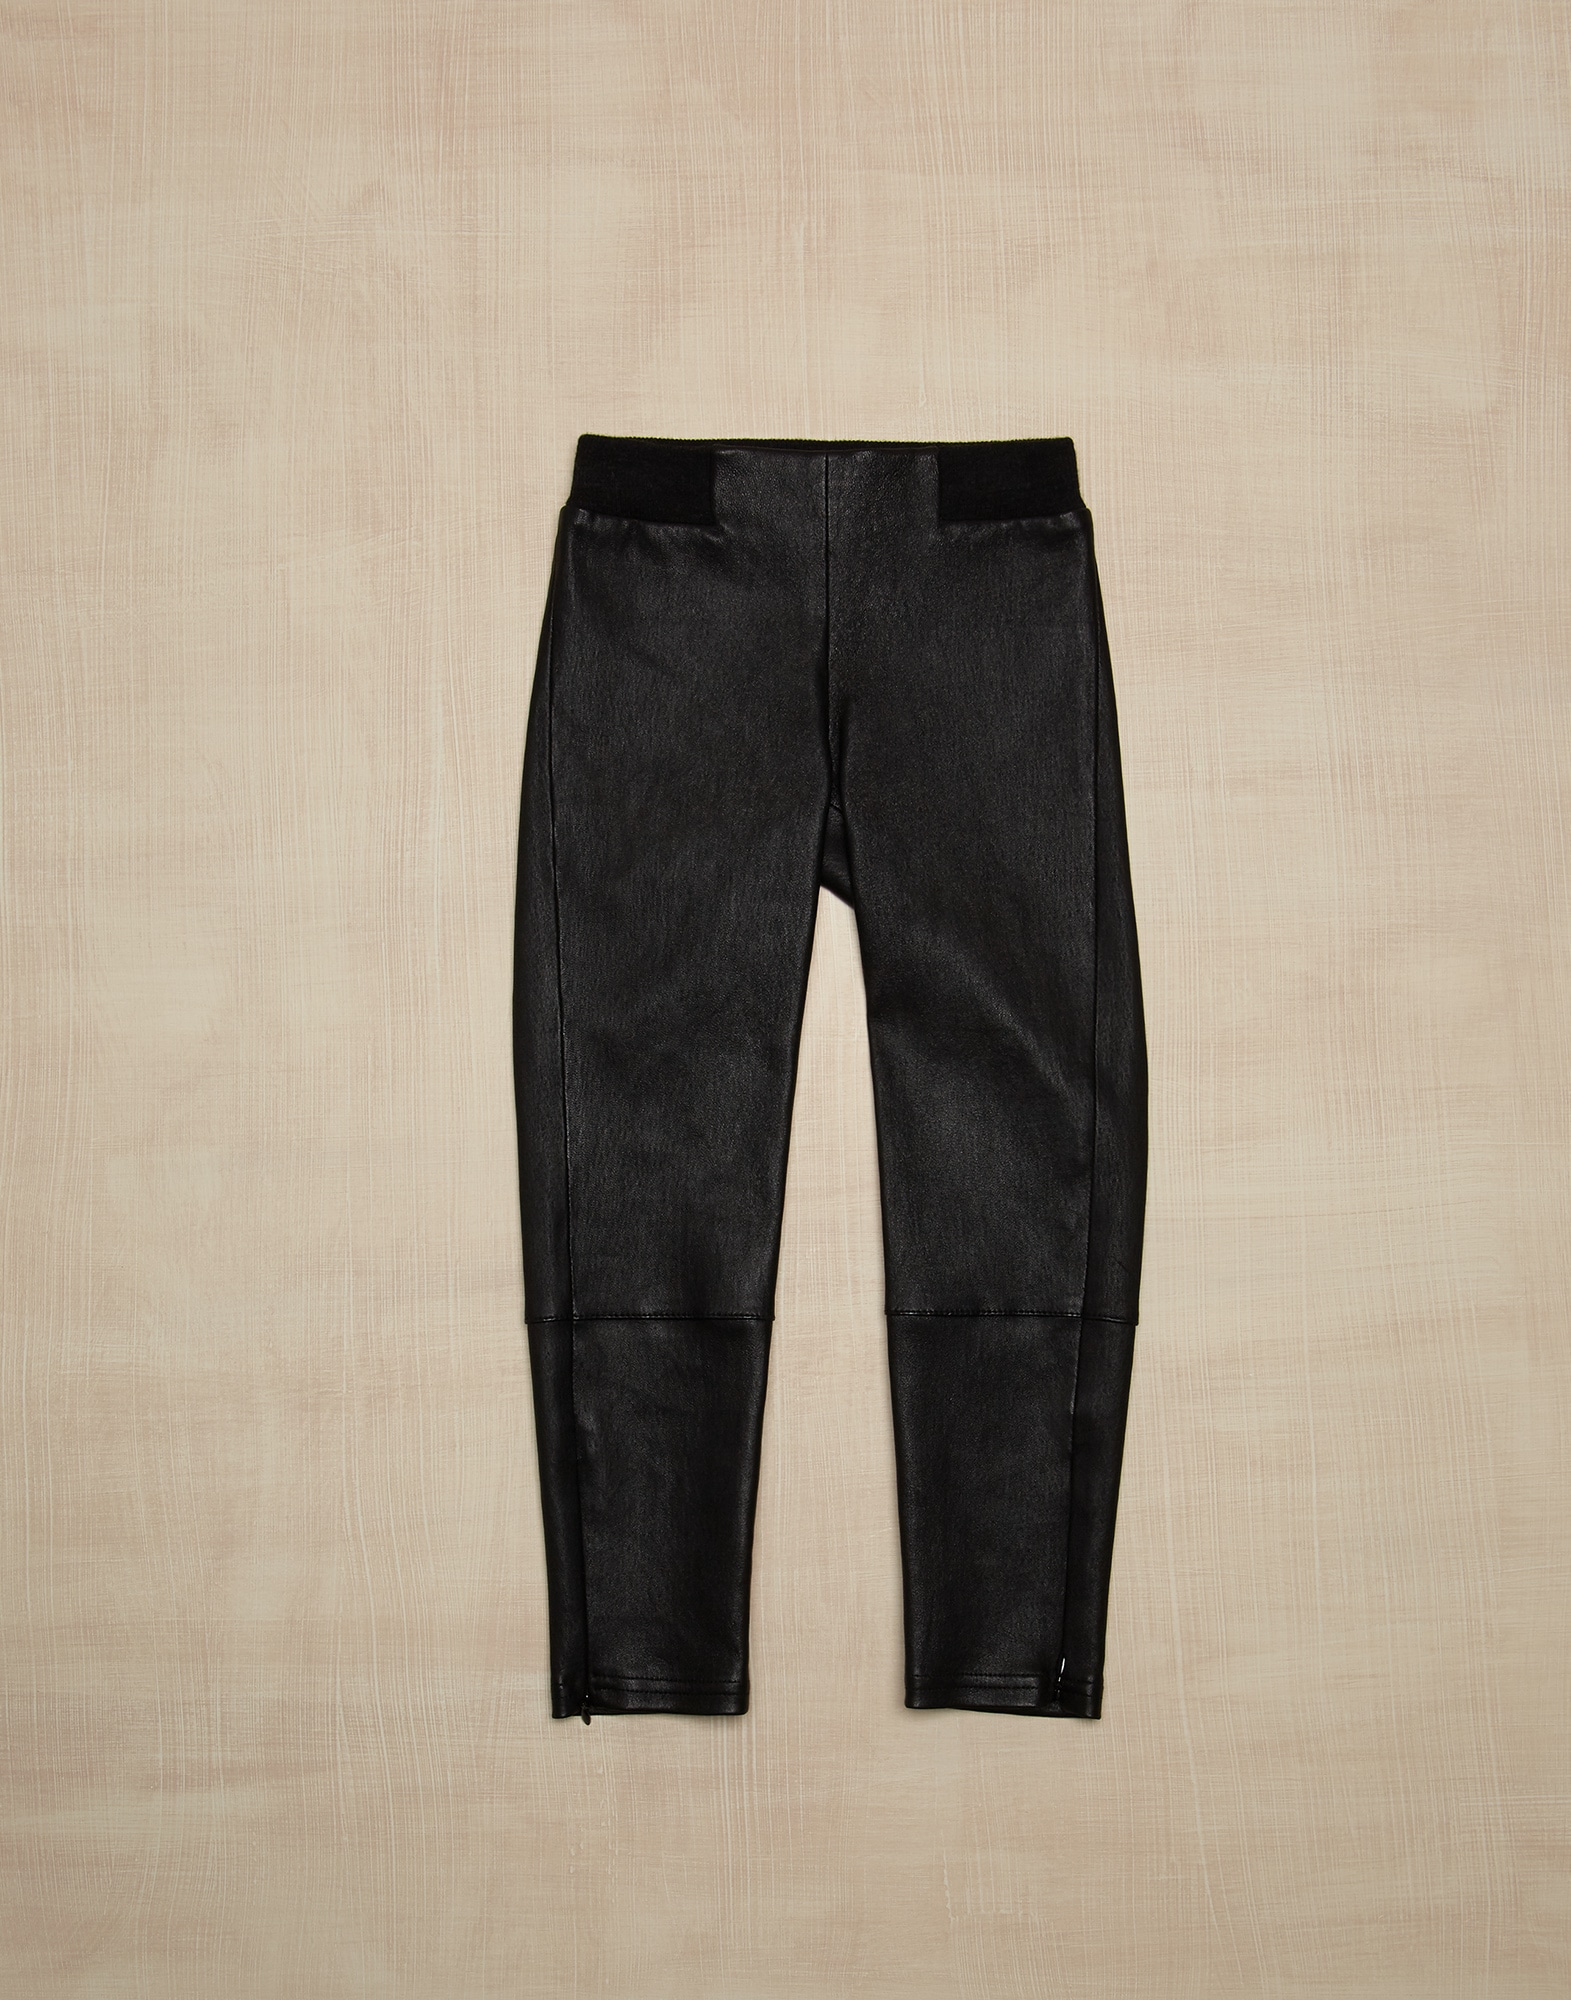 Trousers - Front view